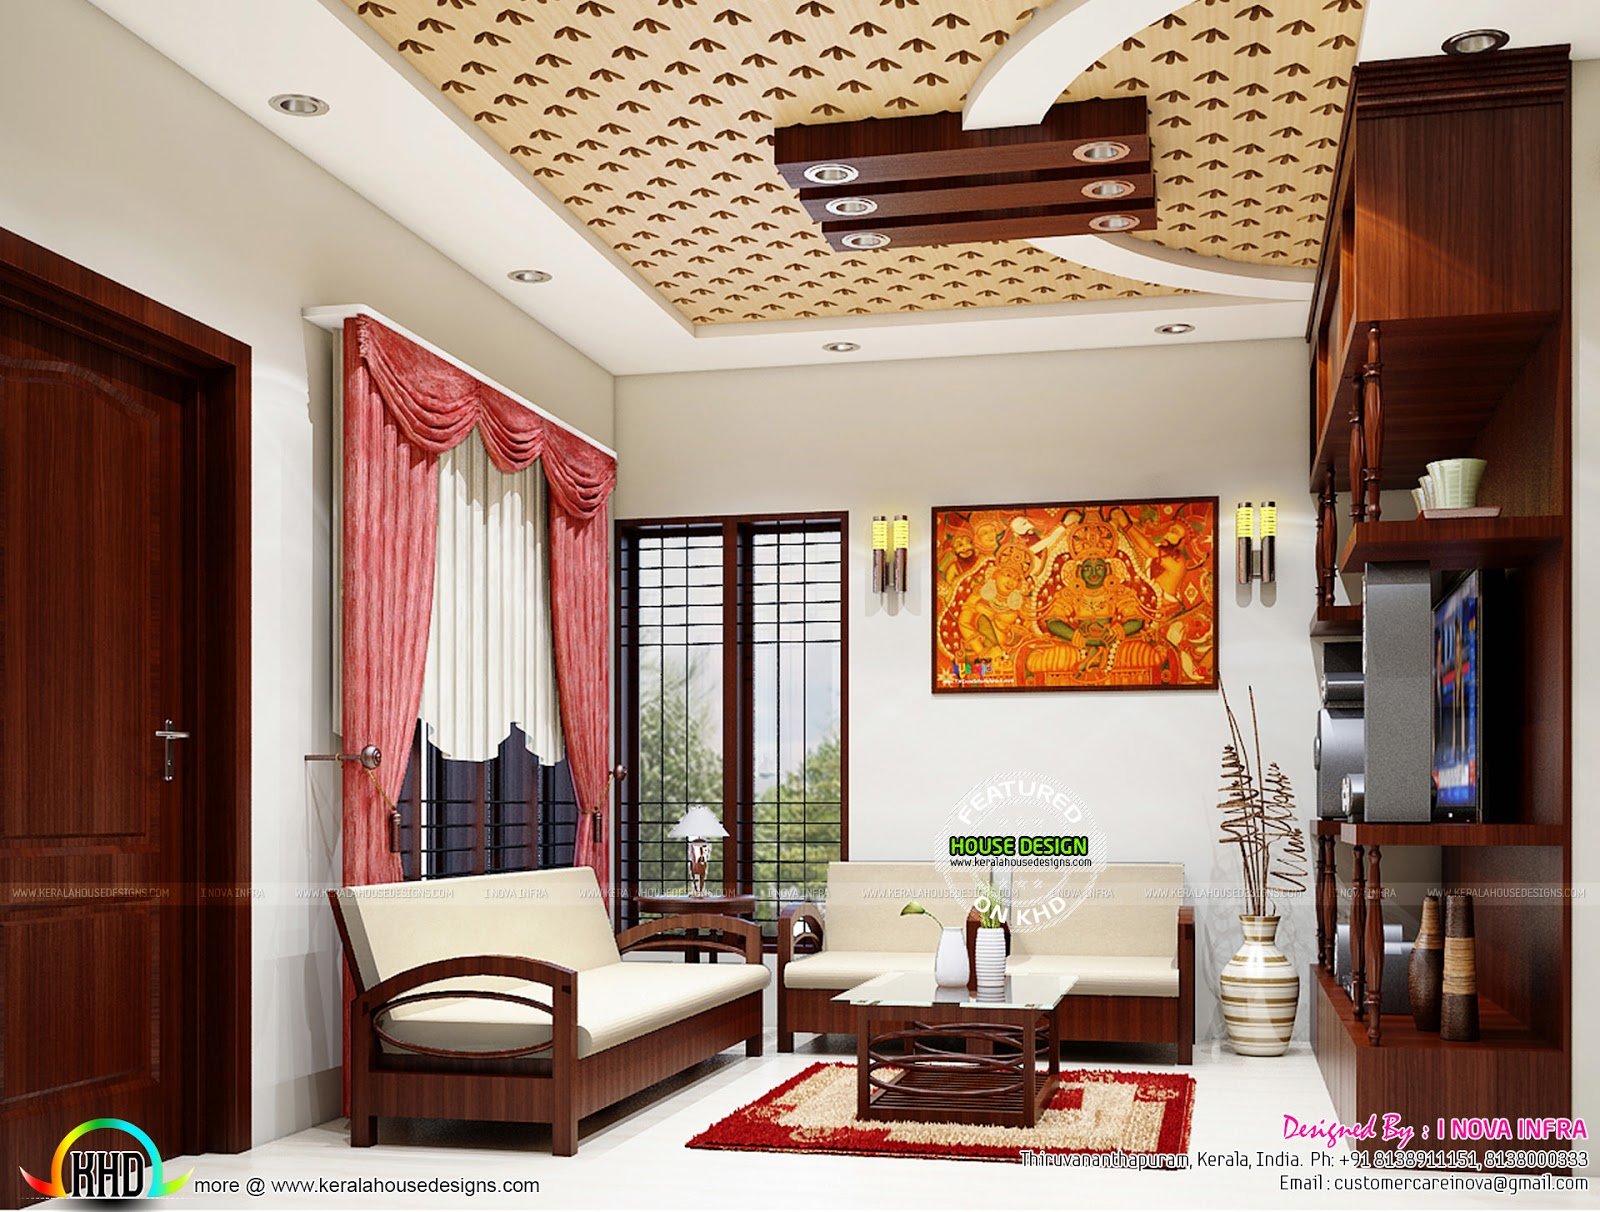 Kerala traditional interiors kerala home design and for House room design